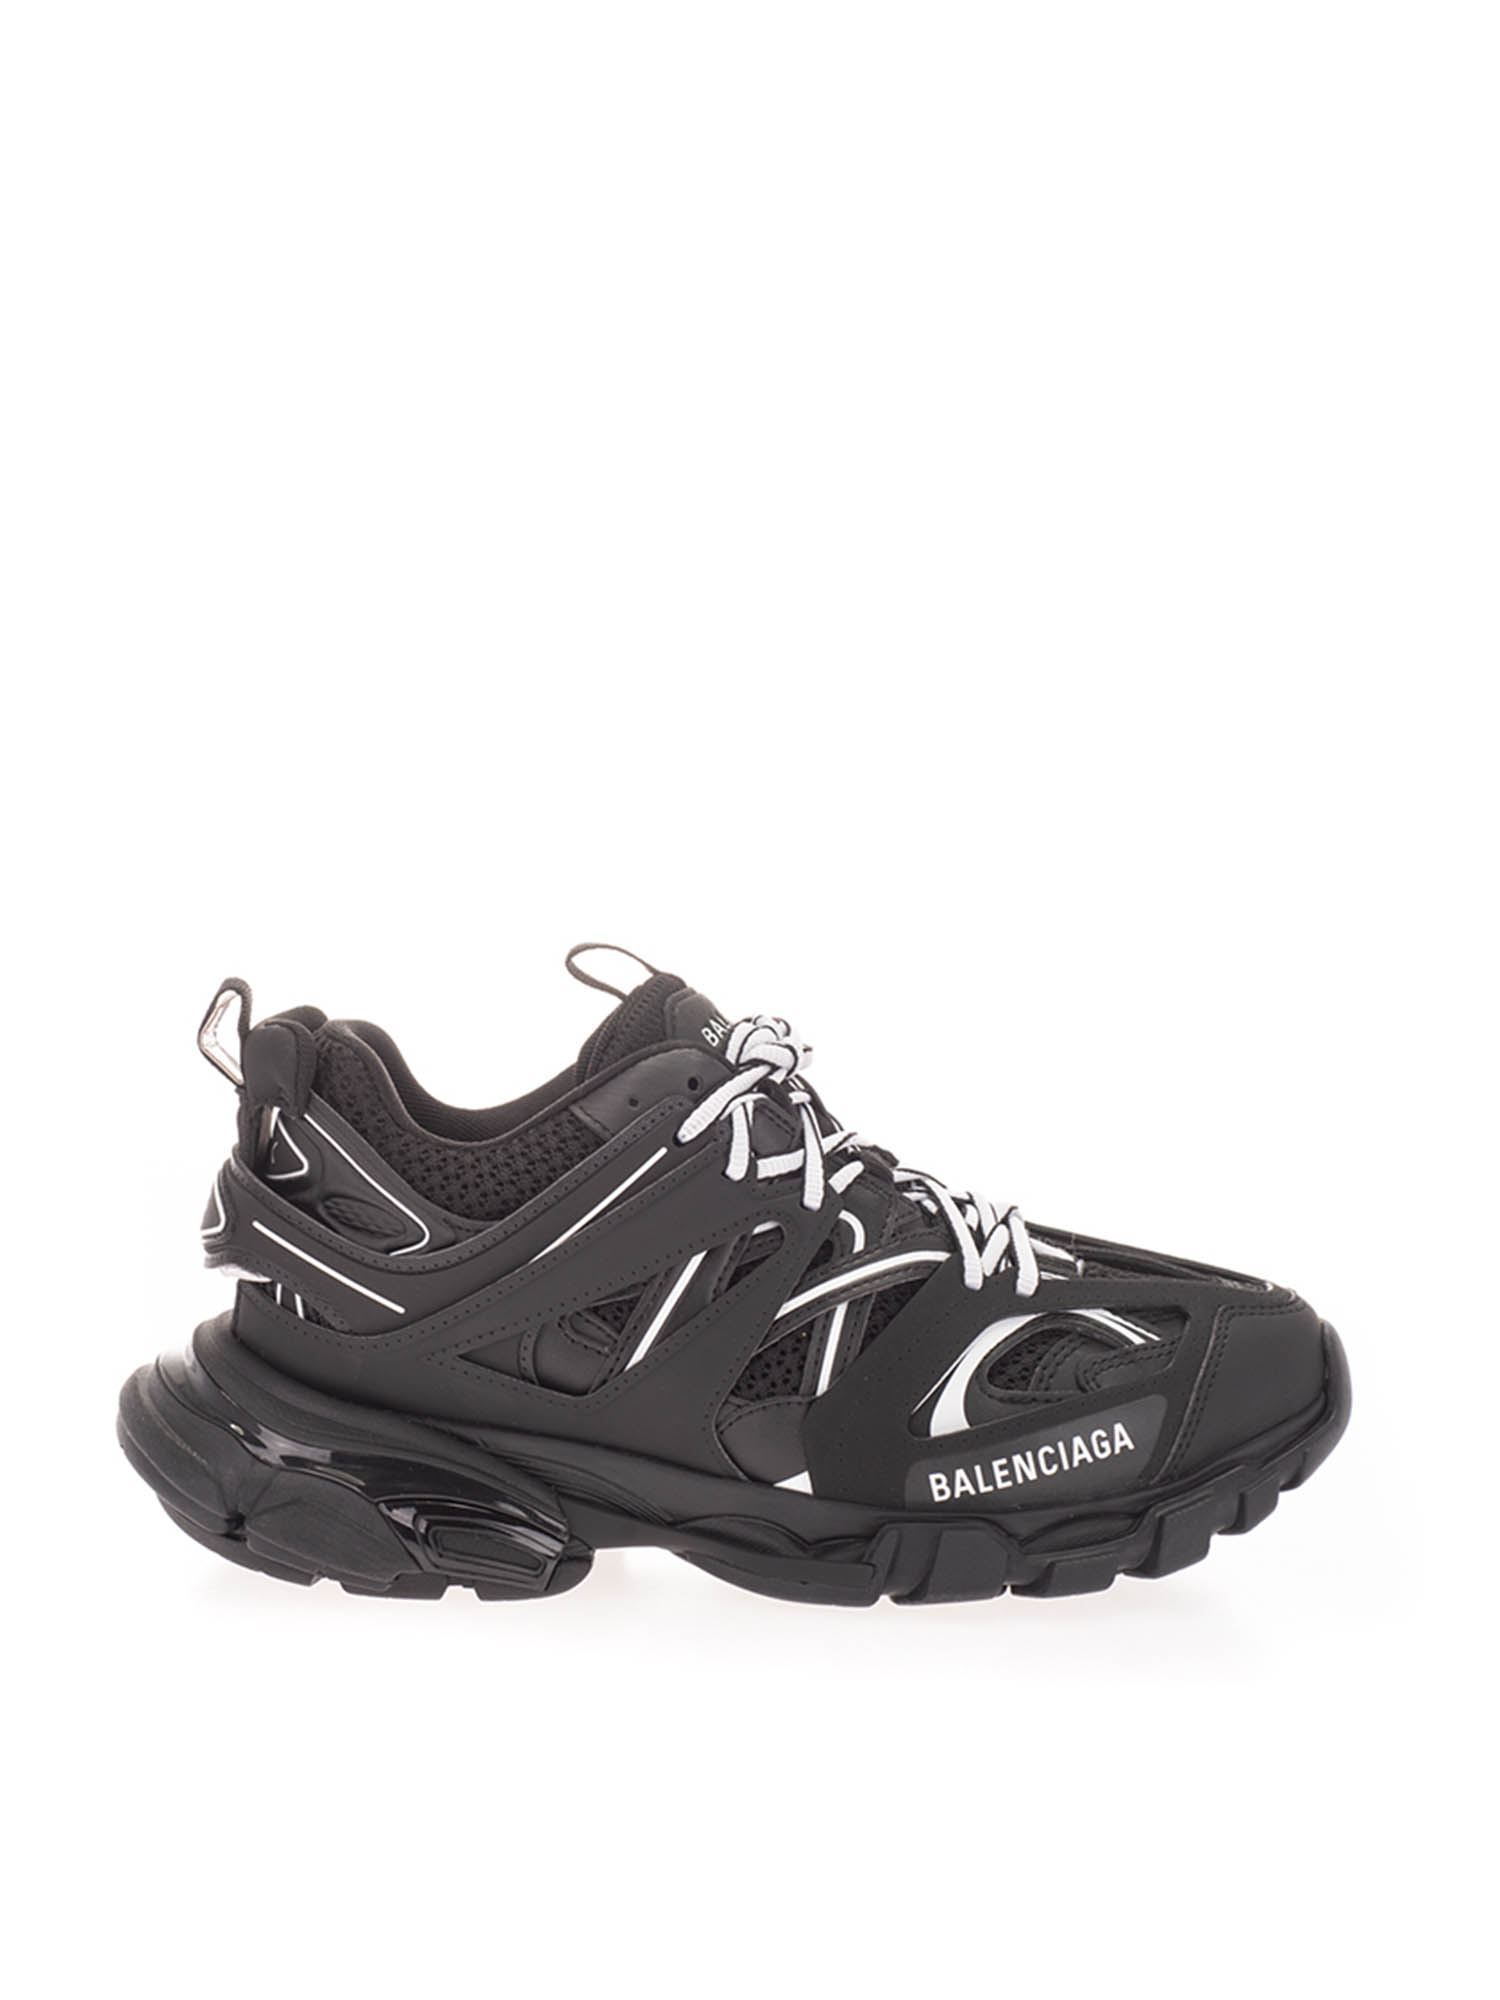 Balenciaga TRACK SNEAKERS IN BLACK